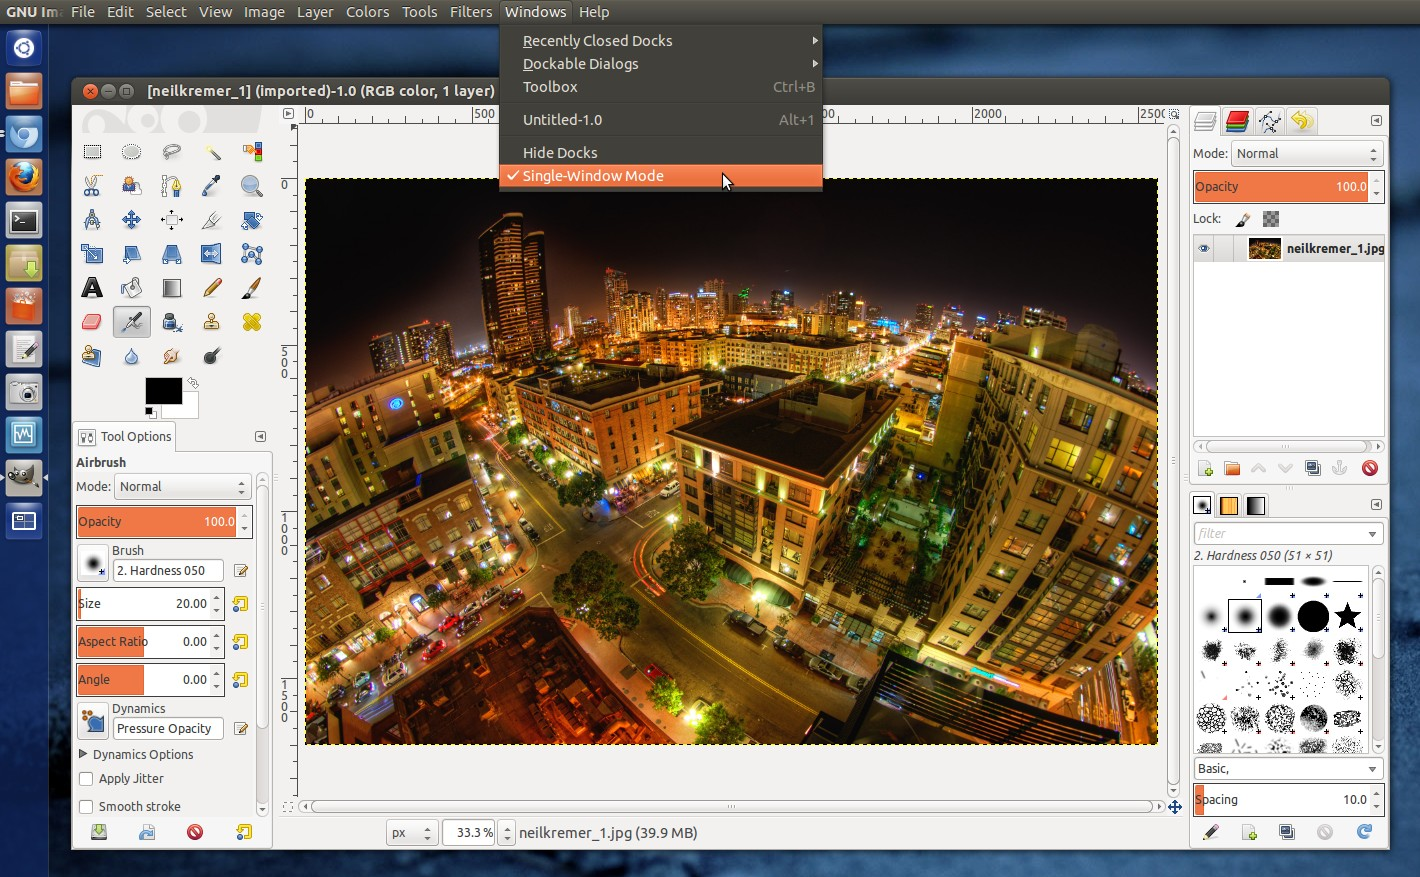 I migliori software di editing foto